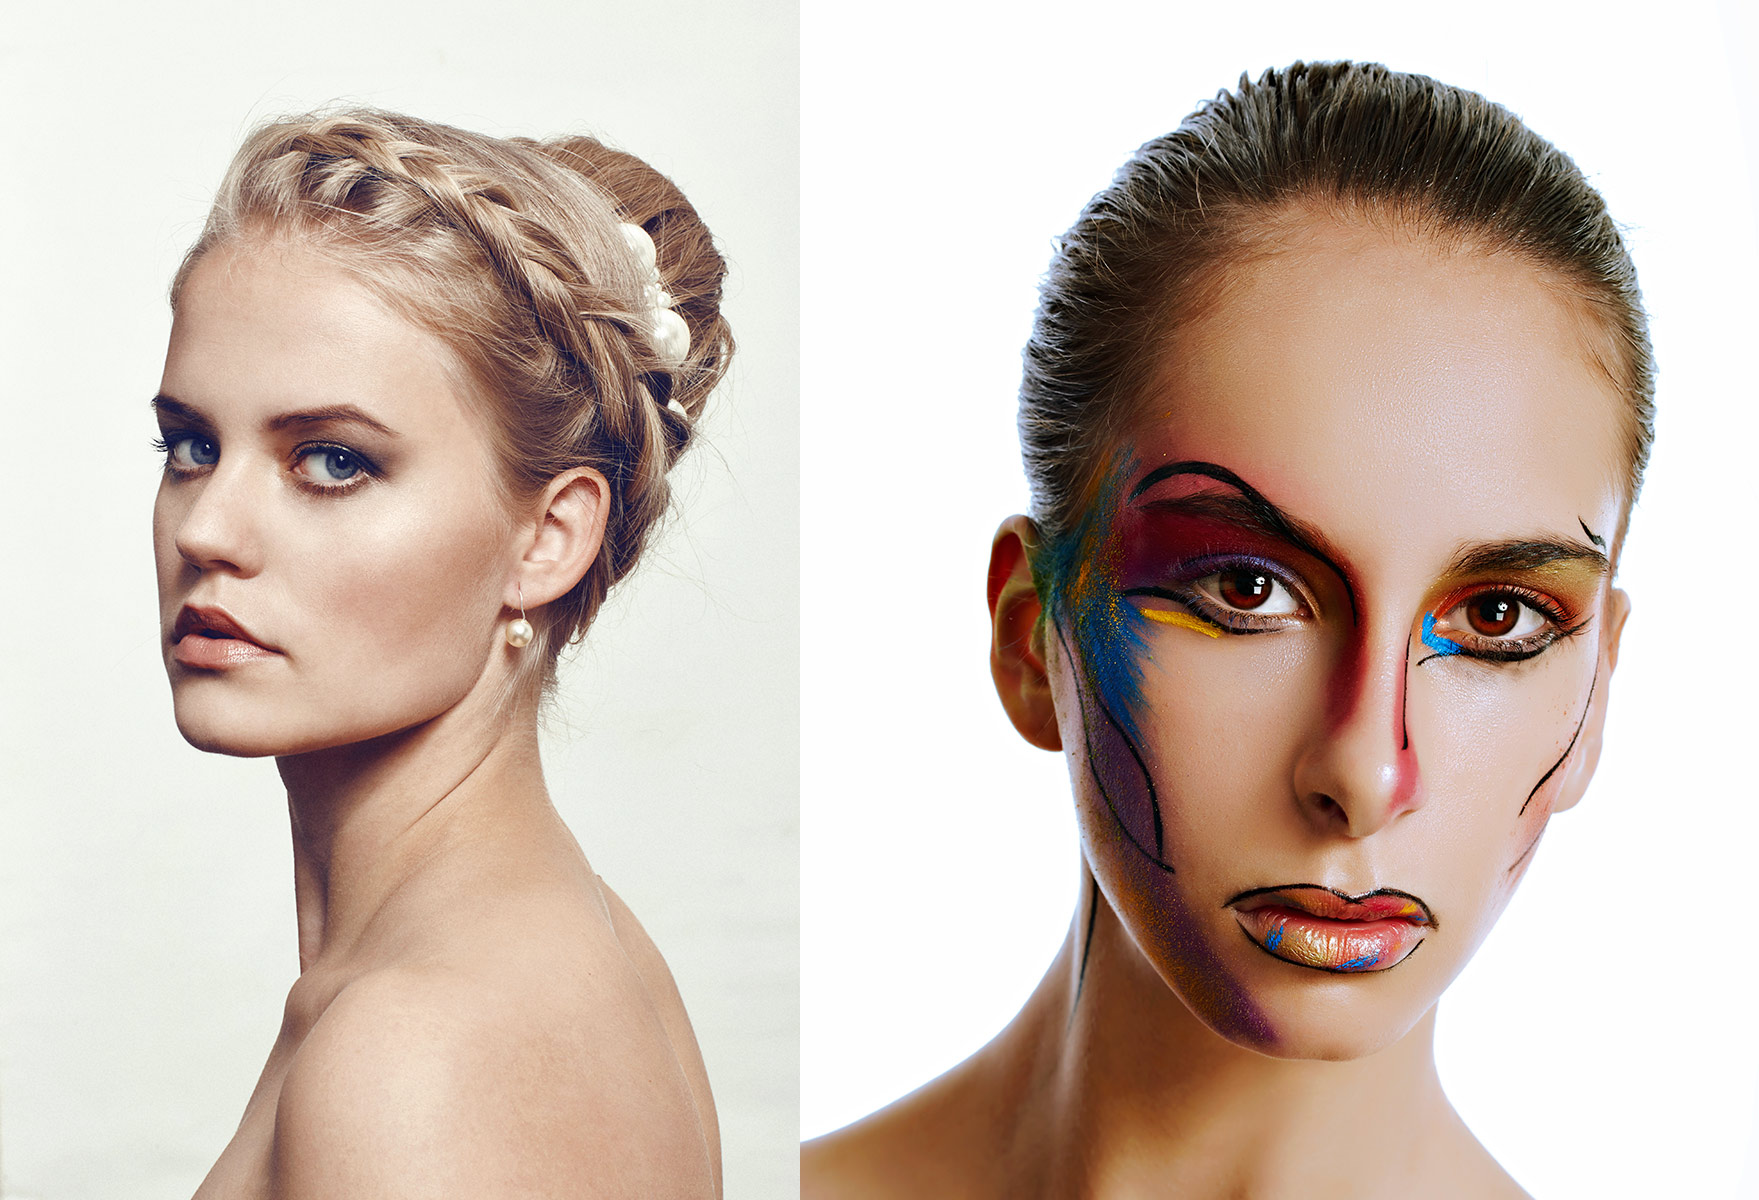 zuzana humajova make up artist